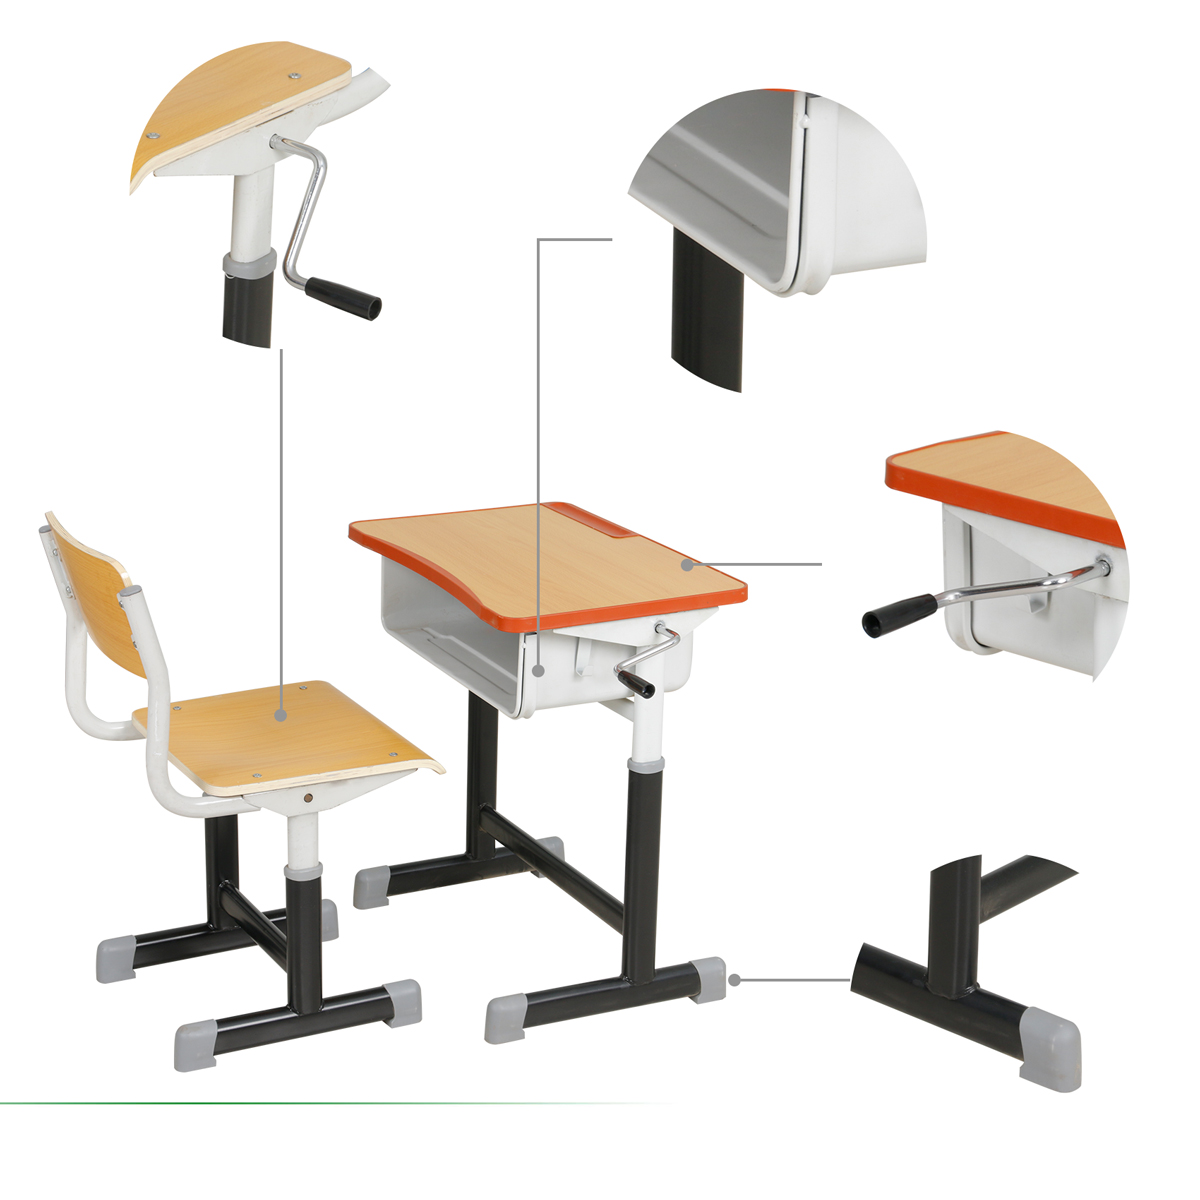 Hand Crank Lifting Desks and Chairs 2.jpg